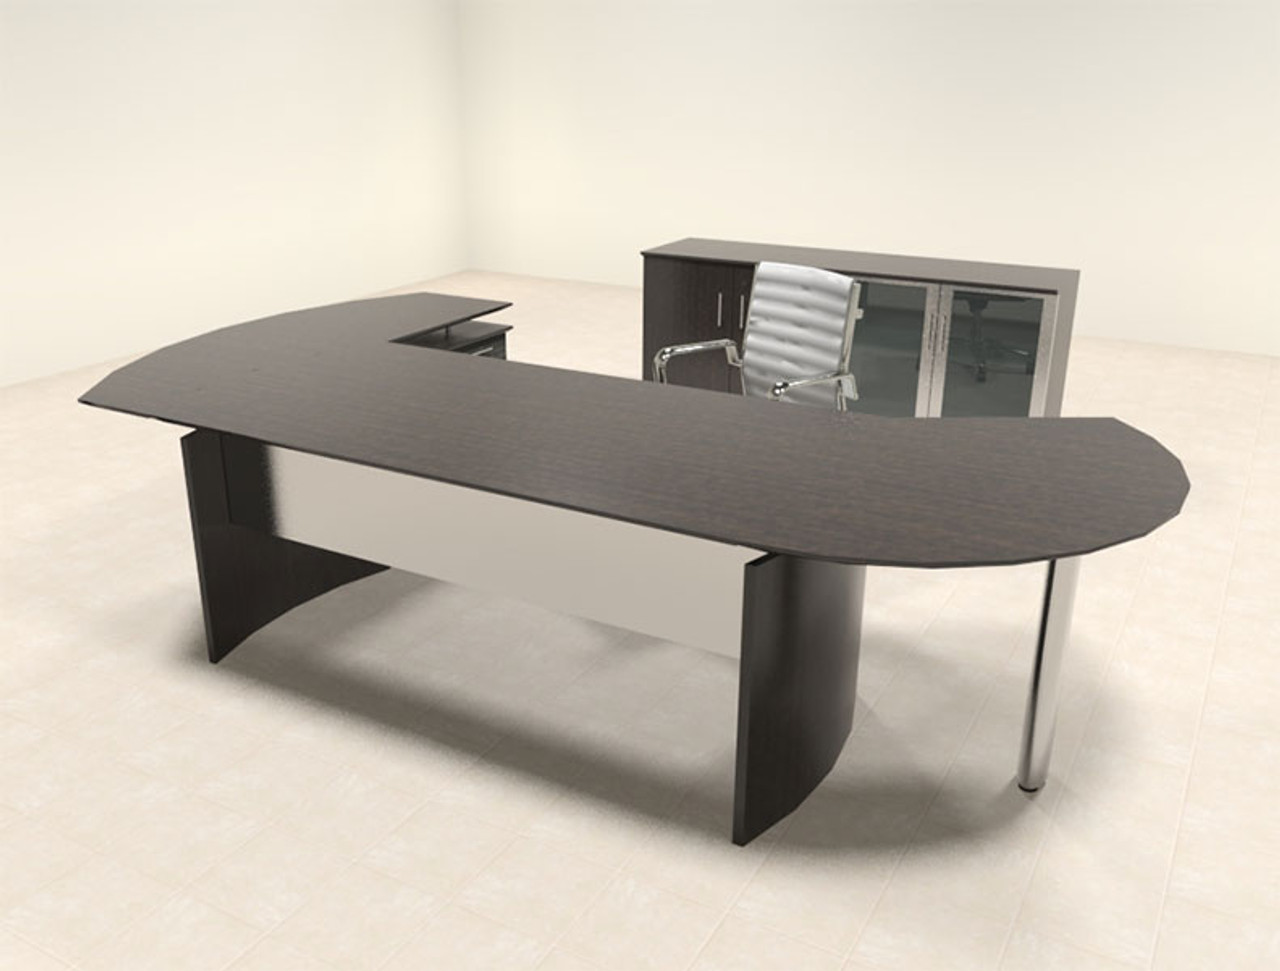 4pc Modern Contemporary L Shaped Executive Office Desk Set, #MT-MED-O12